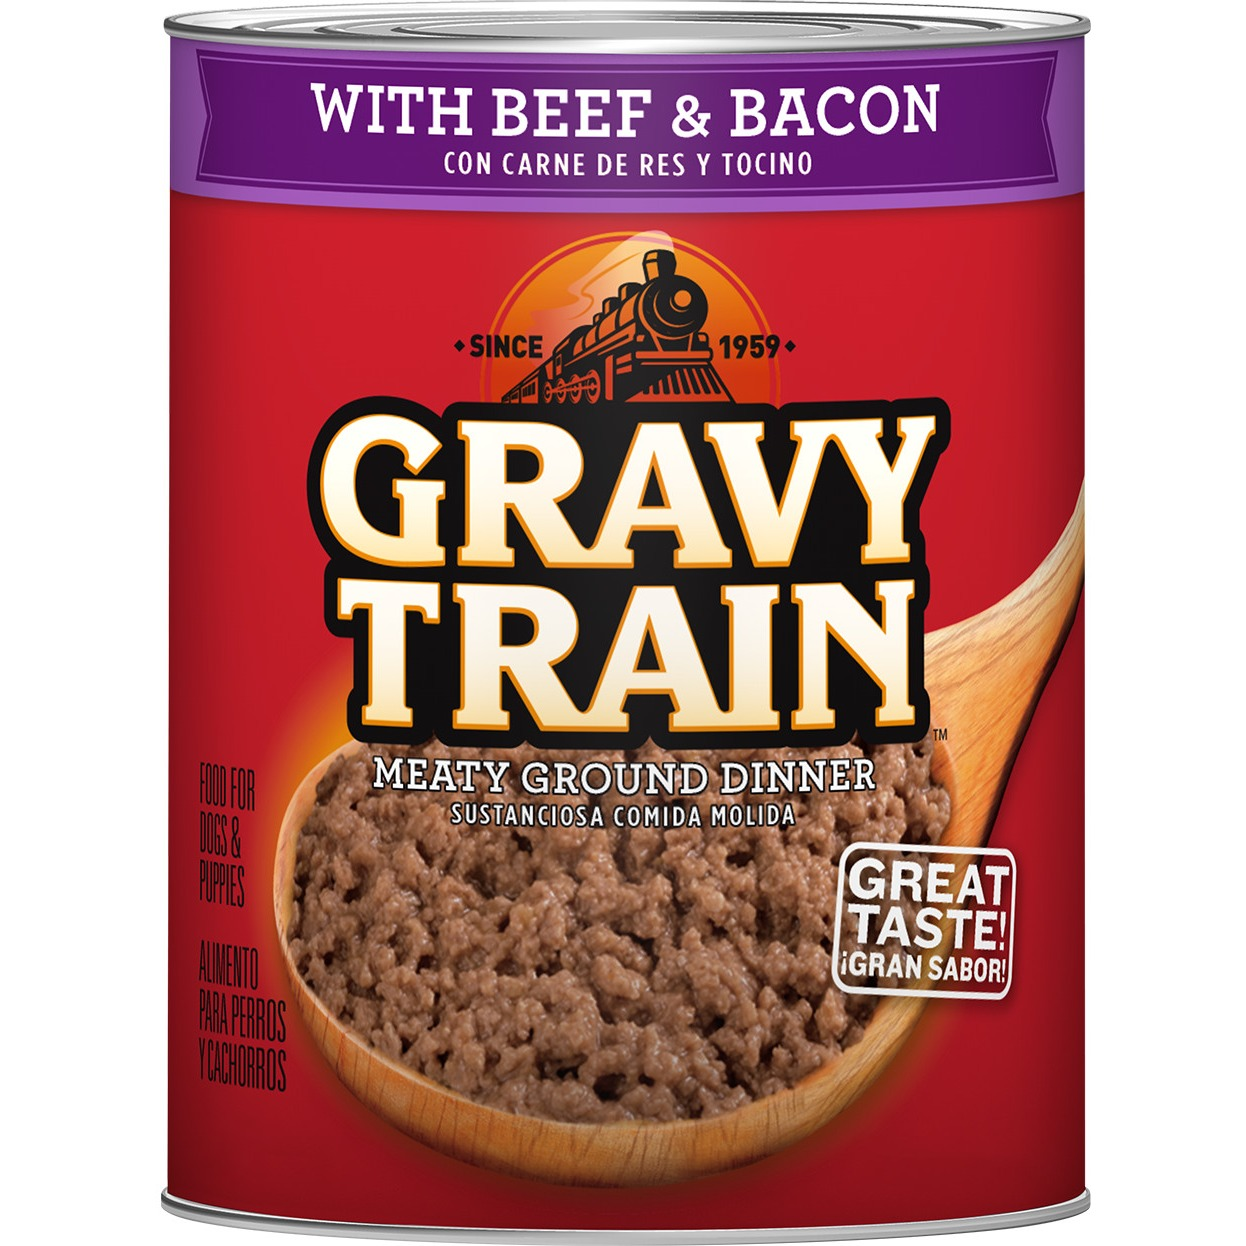 Gravy Train Meaty Ground Dinner With Beef & Bacon